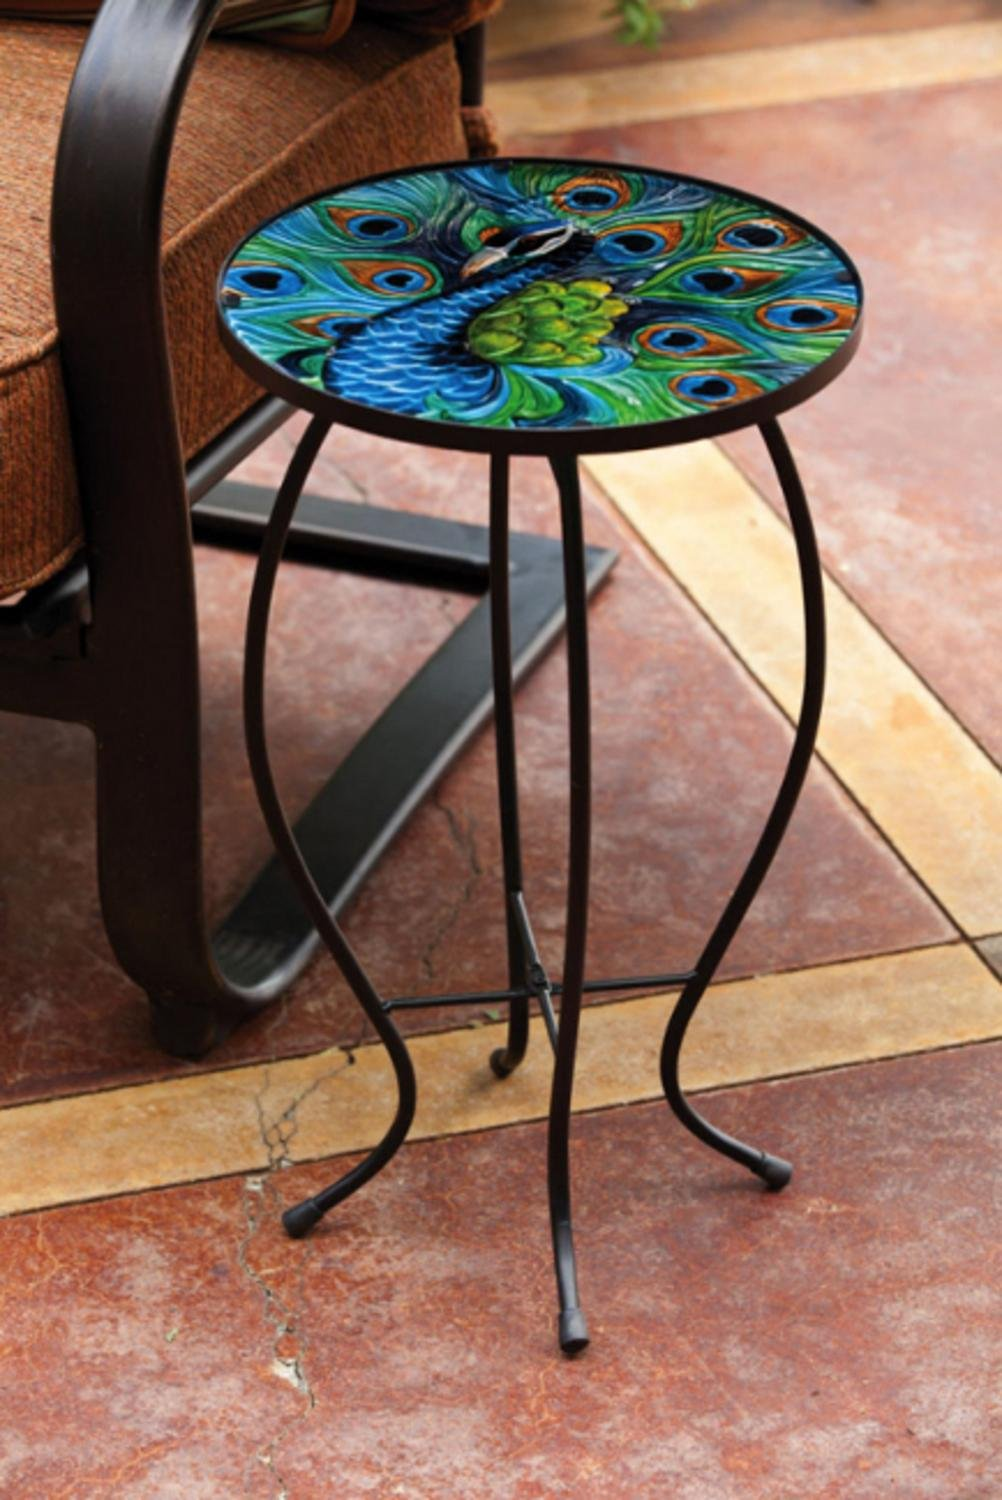 garden home product inch shipping international mandalay side patio table free today caravan overstock metal